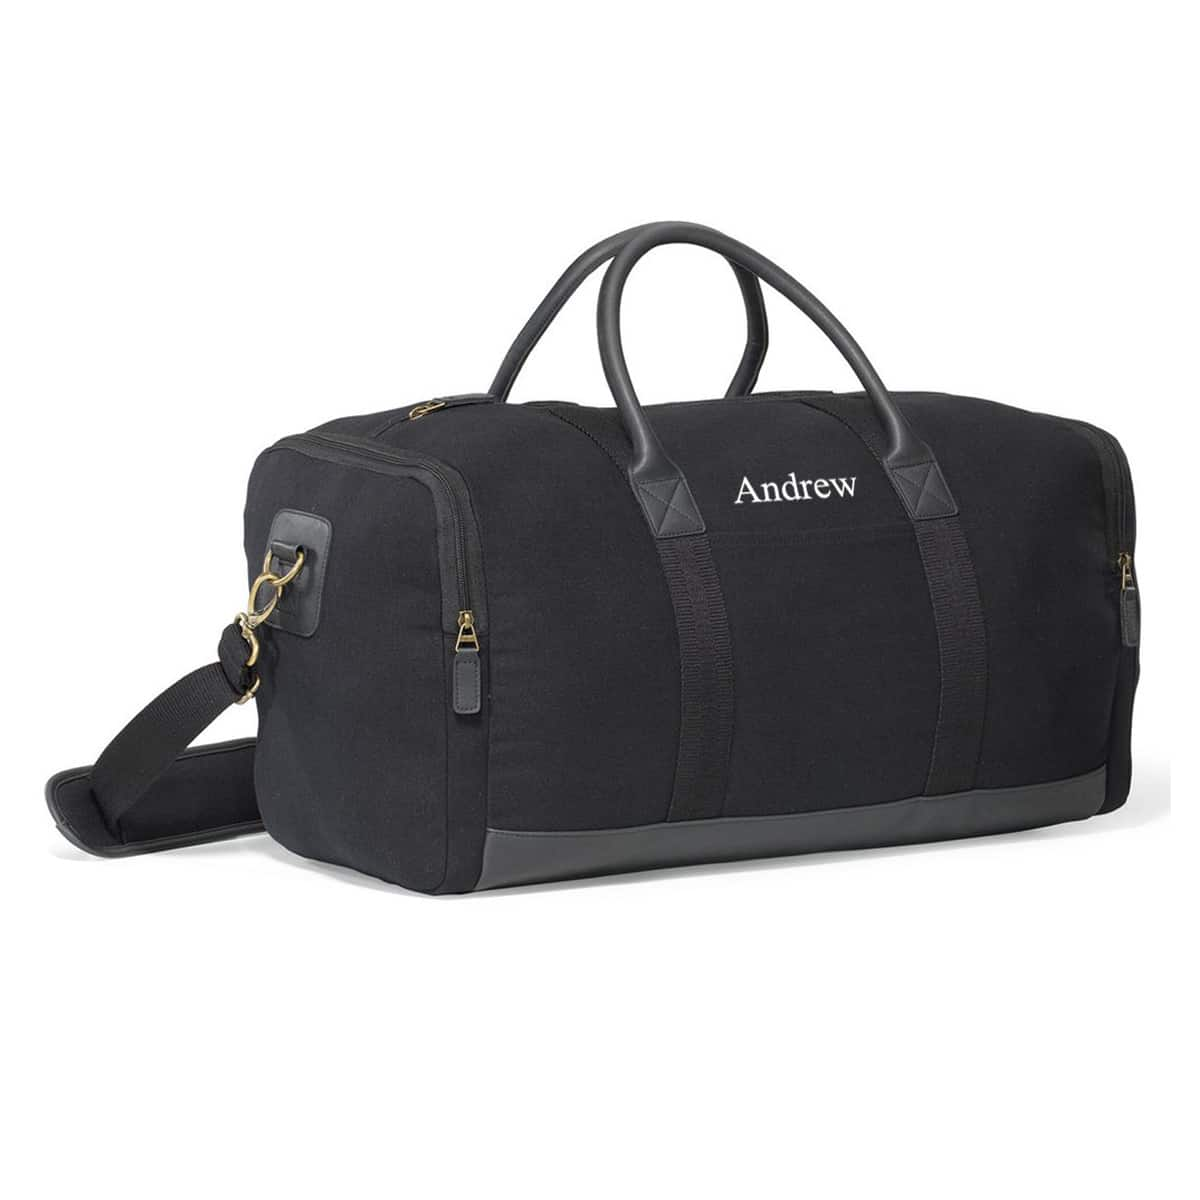 The black version of the Heritage Supply Duffel is sleek and will set you apart from everyone else.